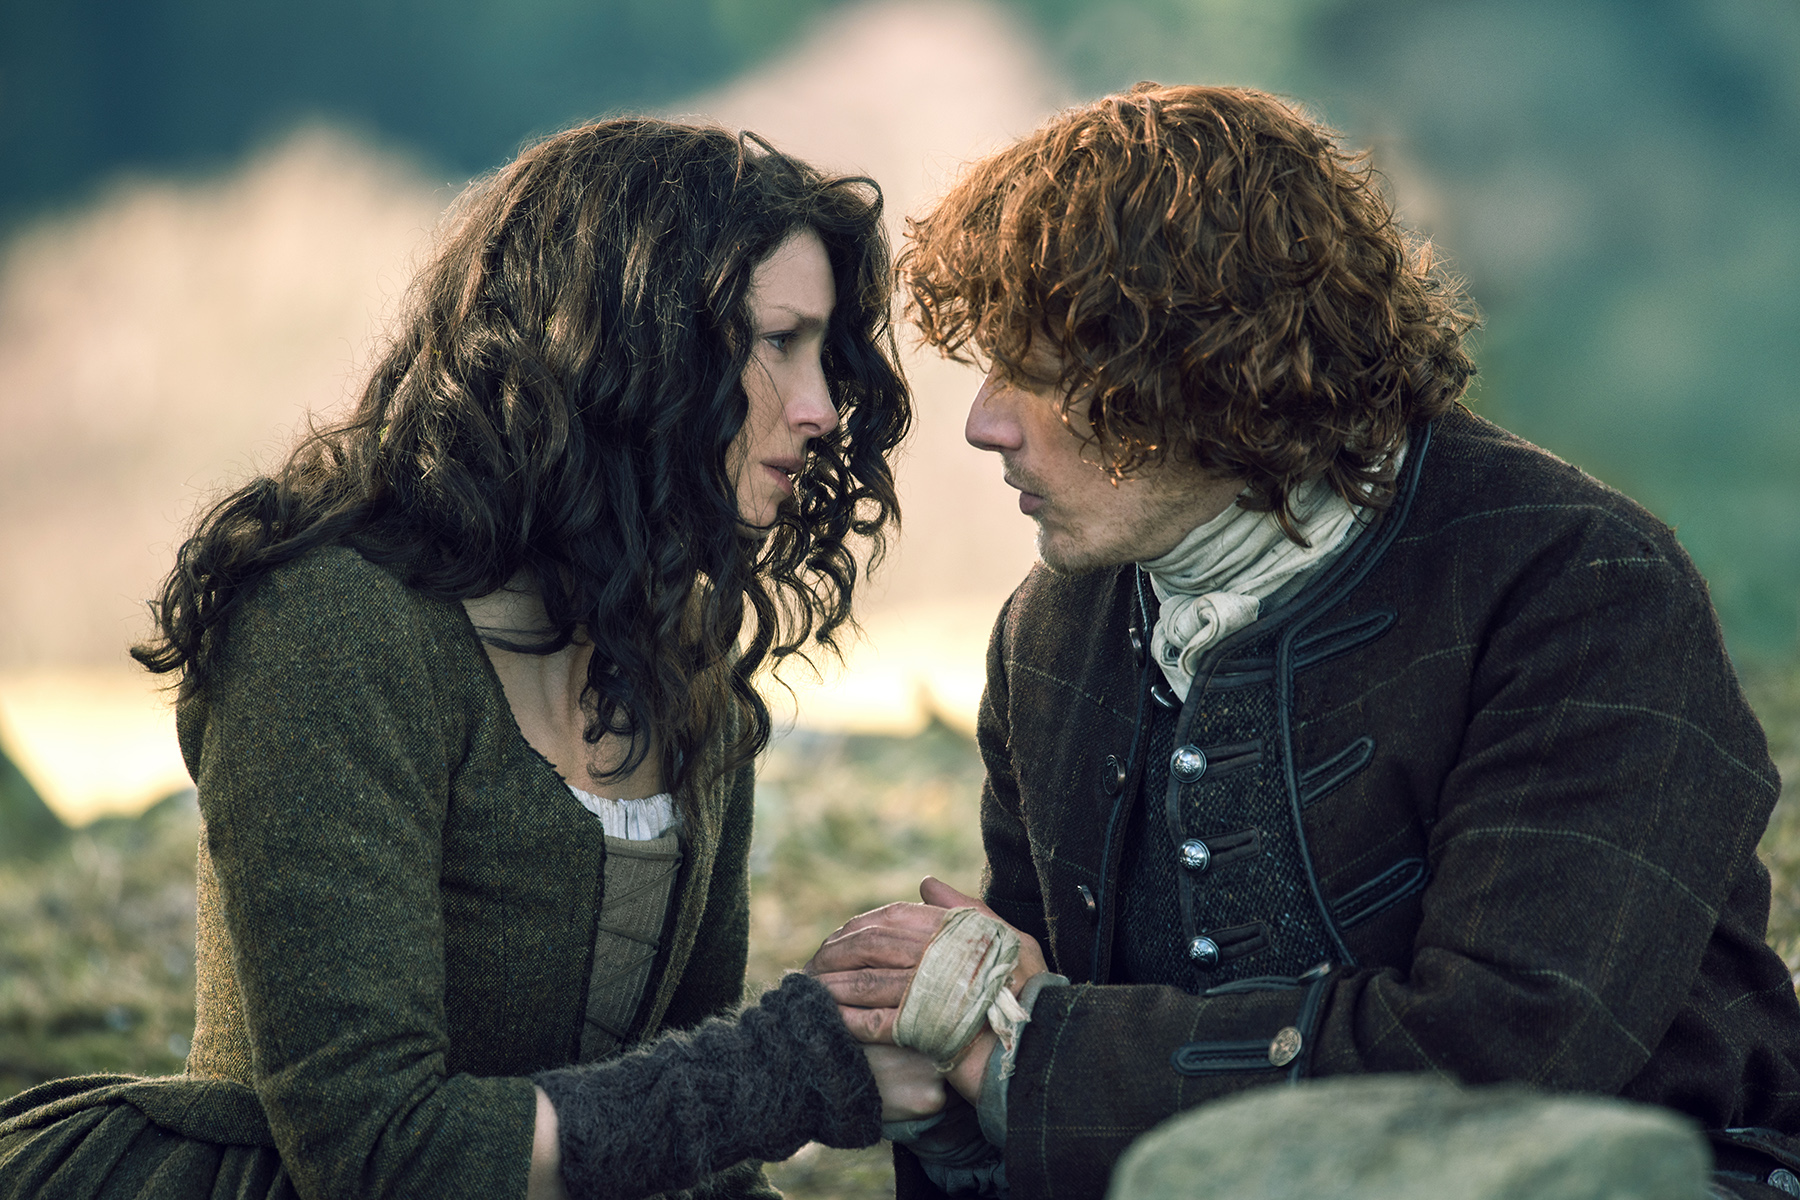 Outlander-Season-2-Finale-Writers-Discuss-Those-Big-Moments-From-Dragonfly-In-Amber